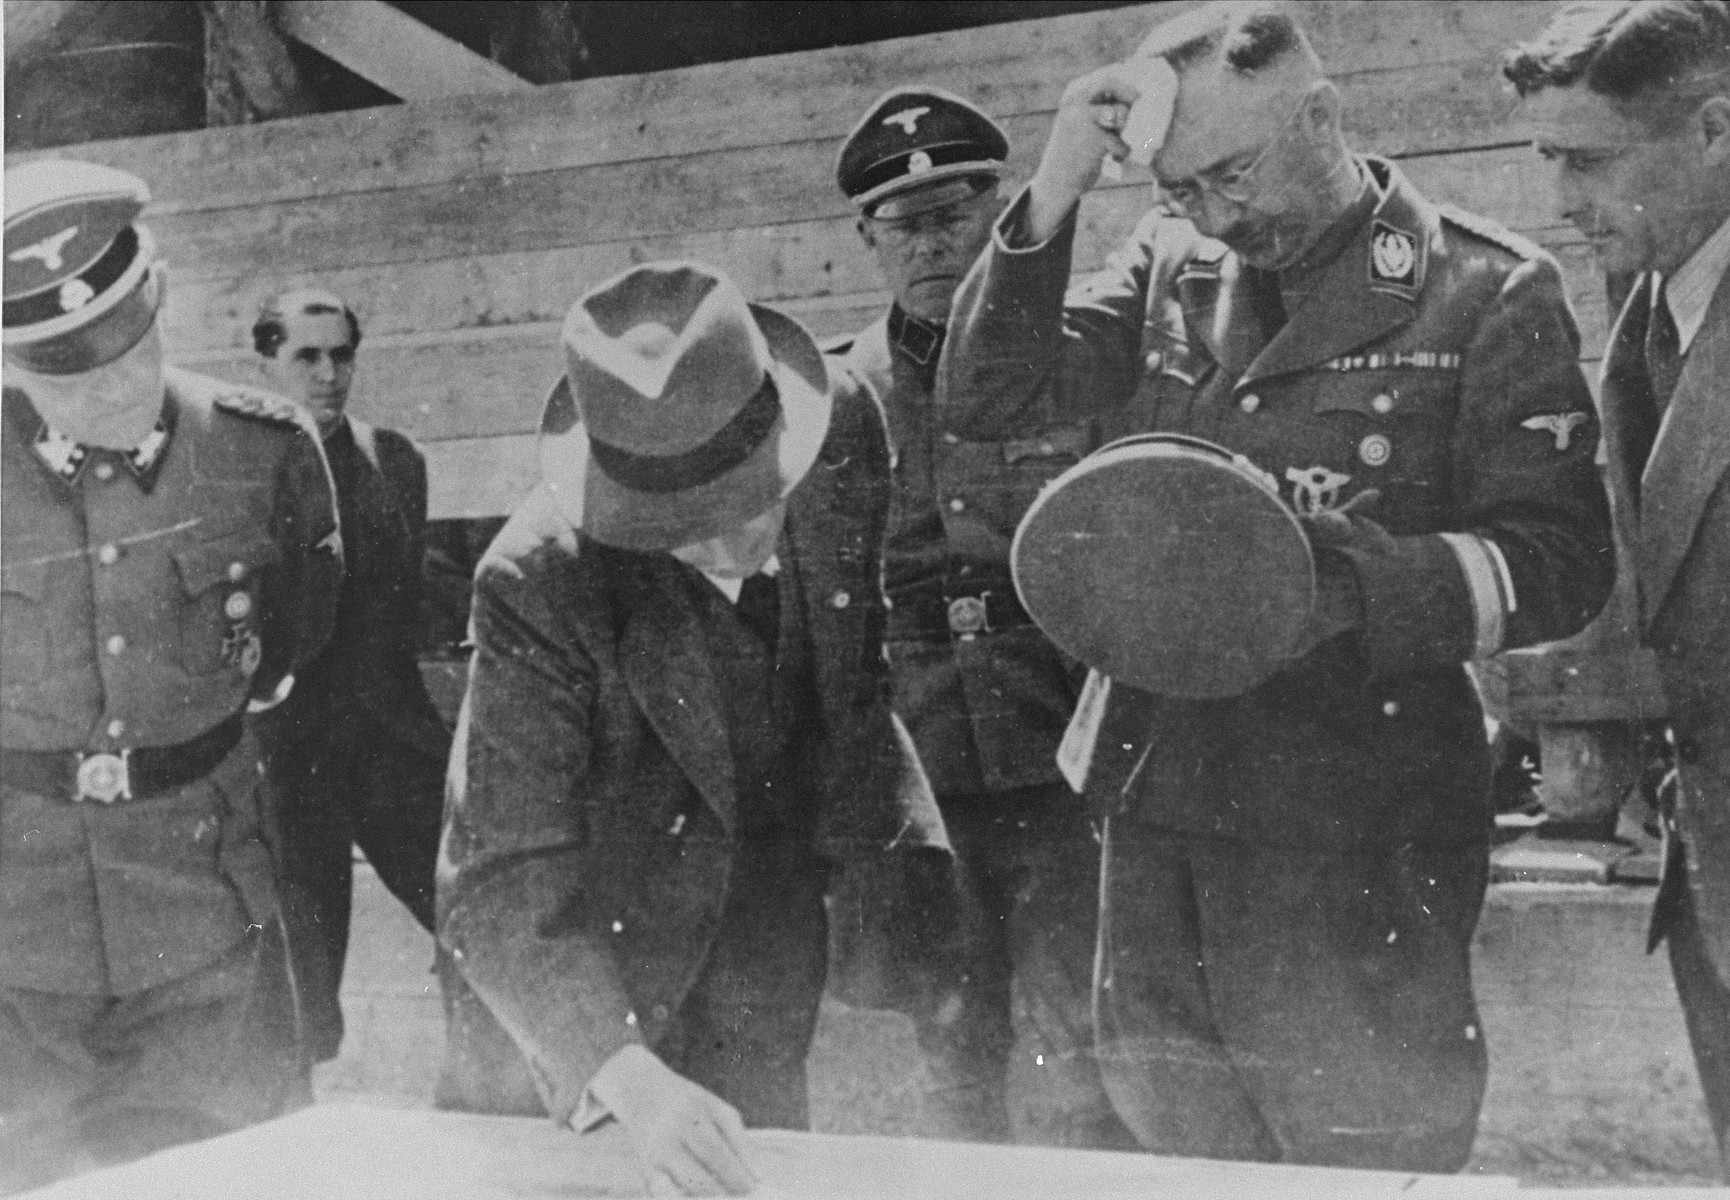 Reichsfuehrer SS Heinrich Himmler wipes his brow while examining a building plan with Max Faust (wearing the fedora) during an inspection tour of the Monowitz-Buna building site. Behind Himmler and to the right is his bodyguard Josef Kiermaier.   Faust, who was an IG Farben engineer, was the head of building operations at Monowitz-Buna.